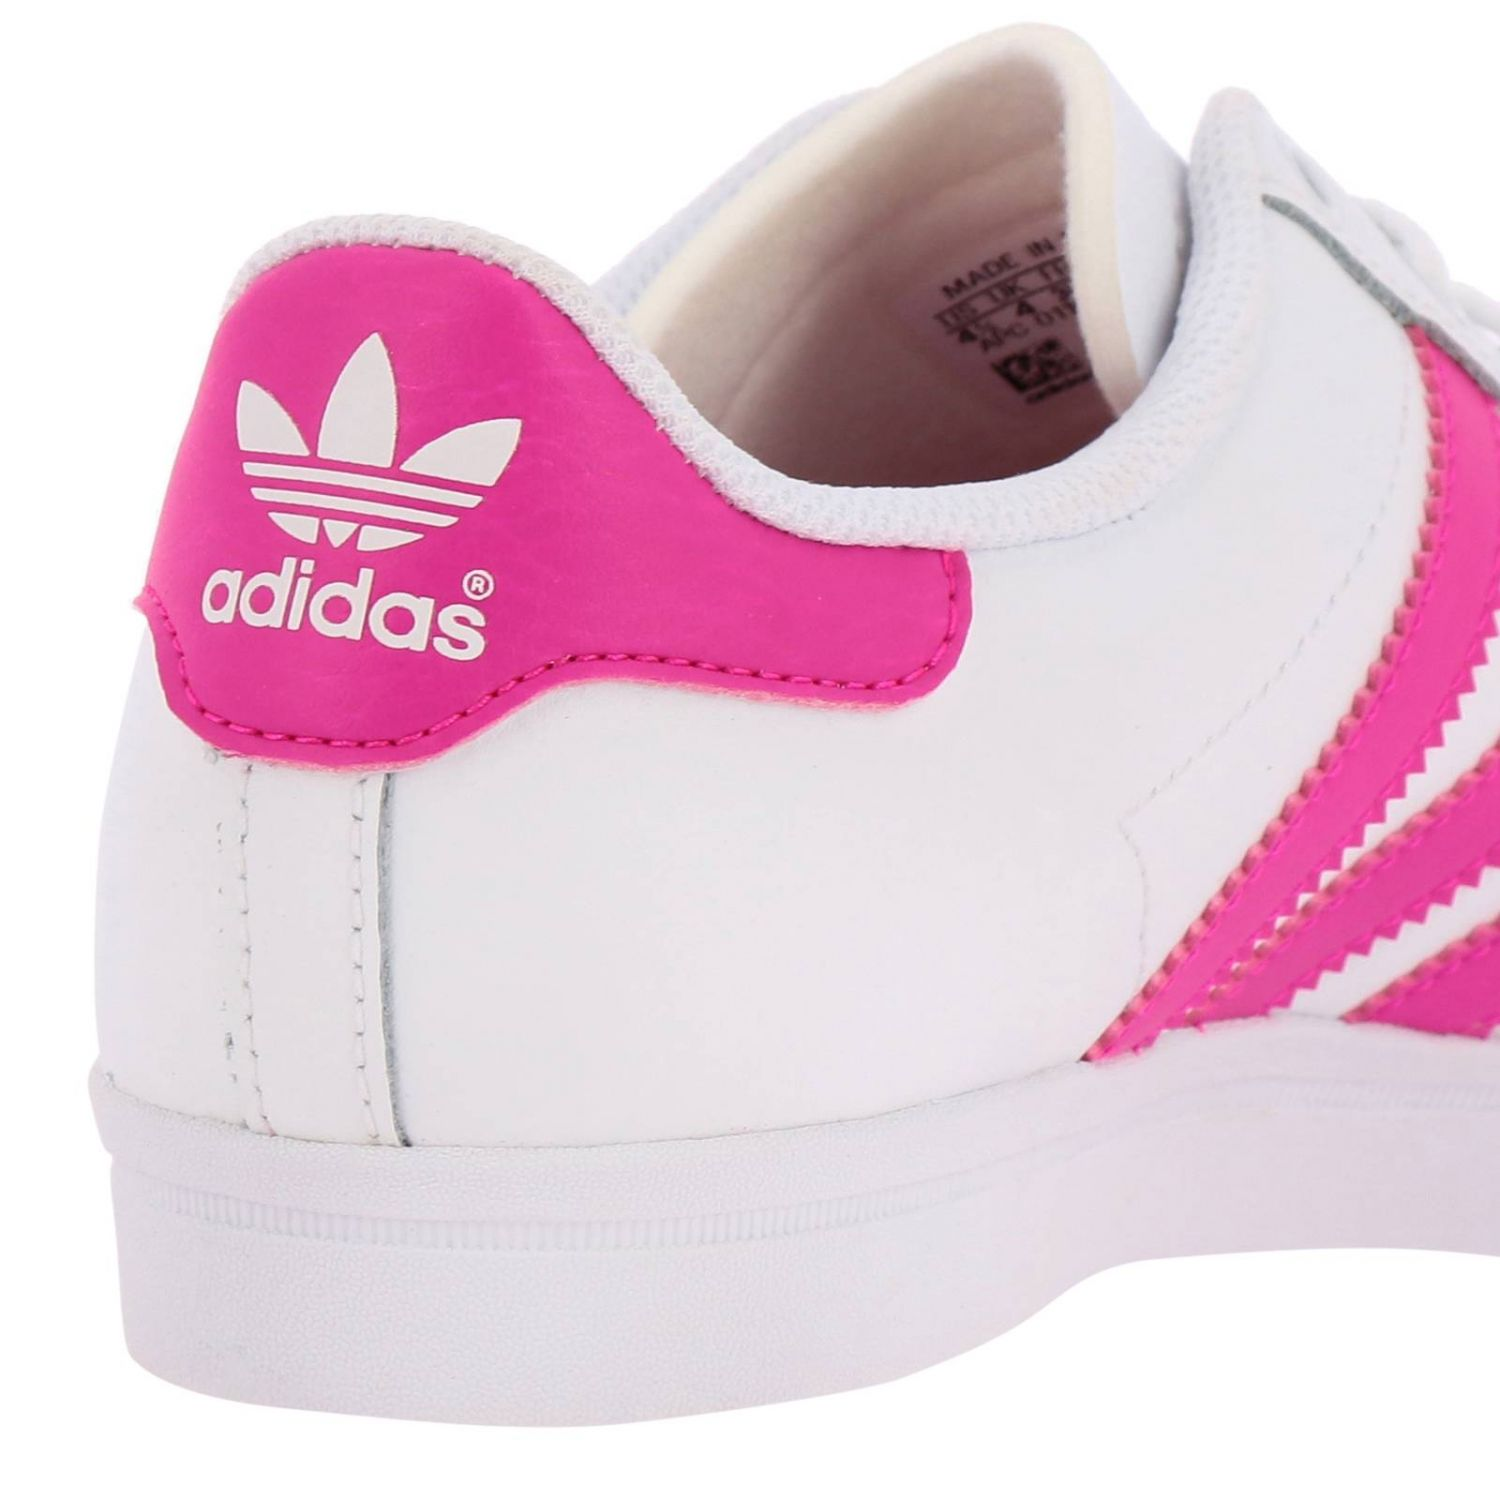 Scarpe Adidas Originals: Sneakers Coast star J Adidas Originals in pelle con bande a contrasto bianco 4